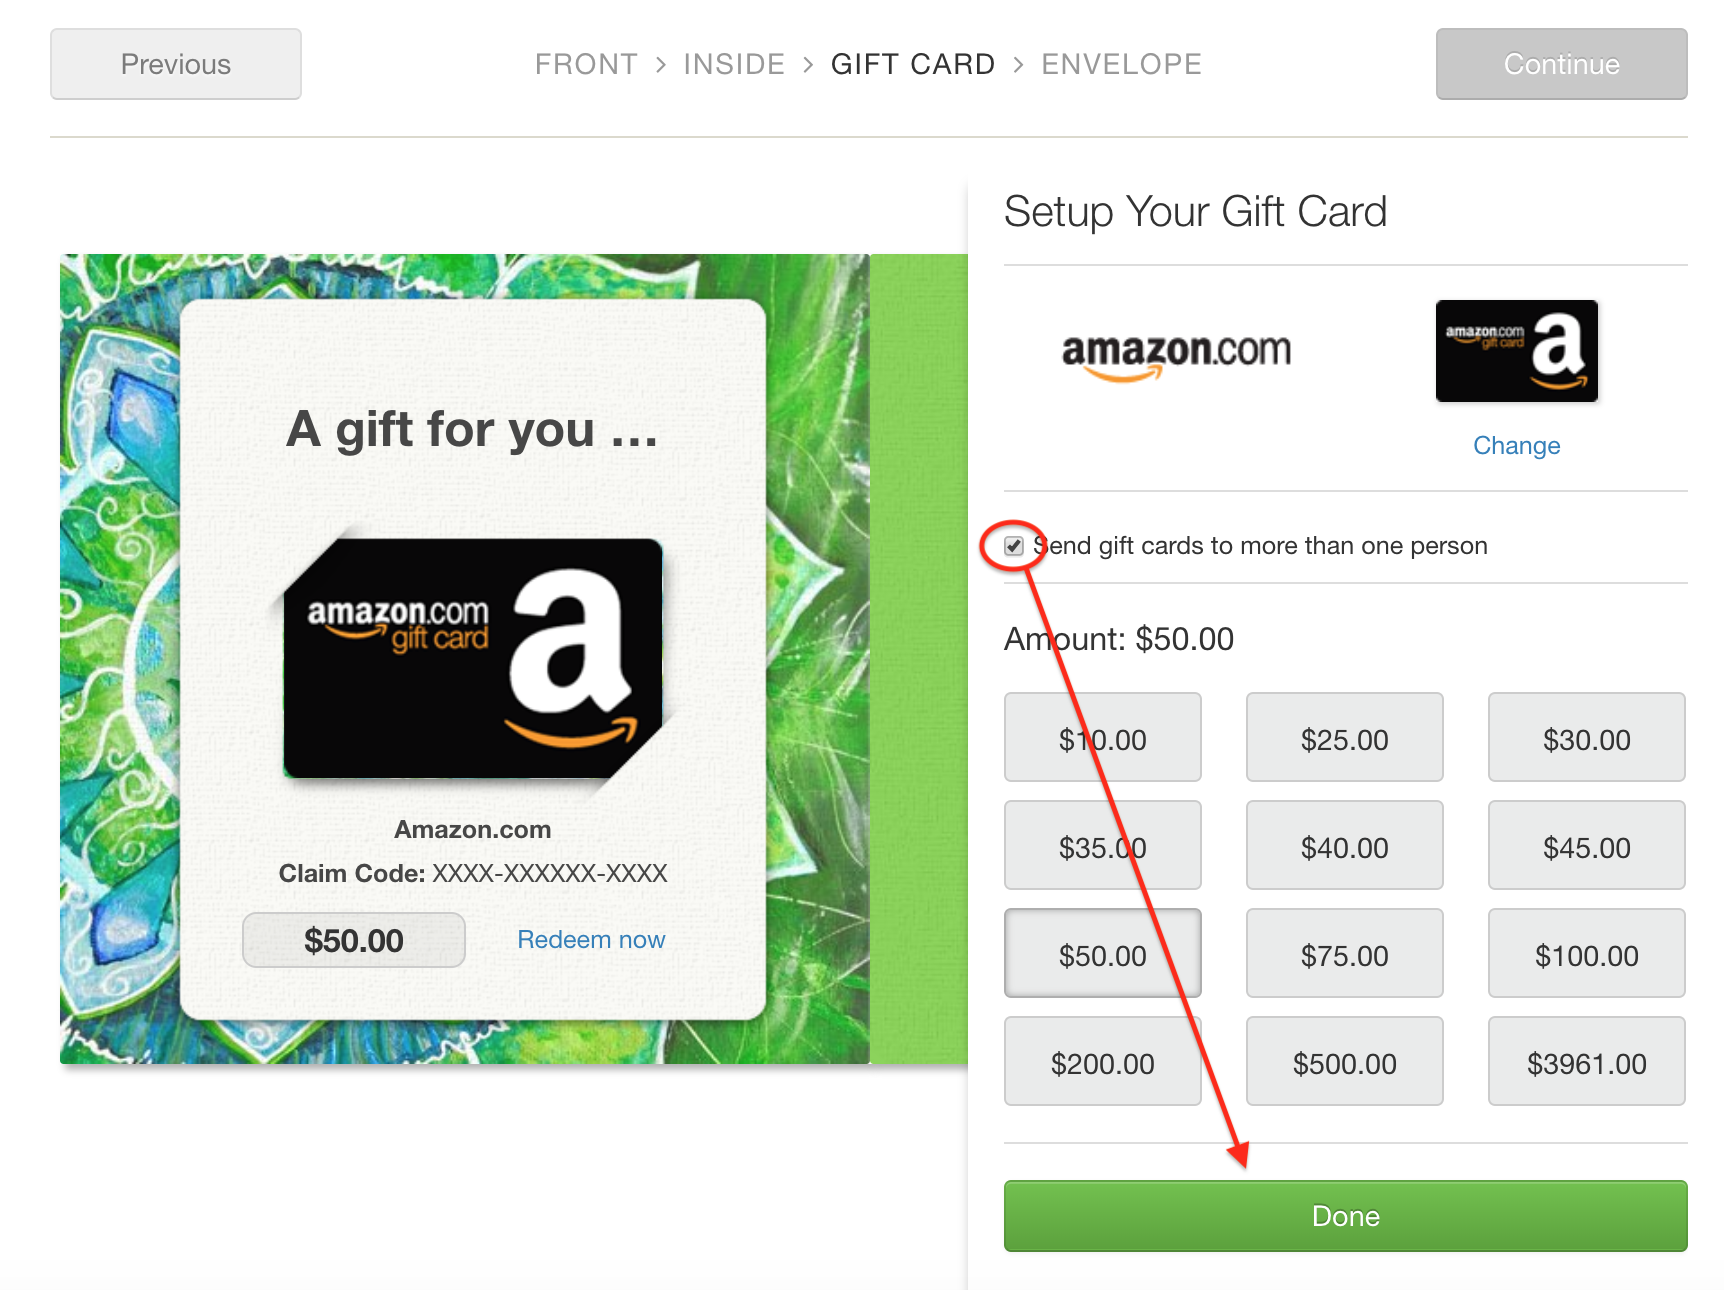 How Do I Send Gift Cards To Multiple People Punchbowl Help Center